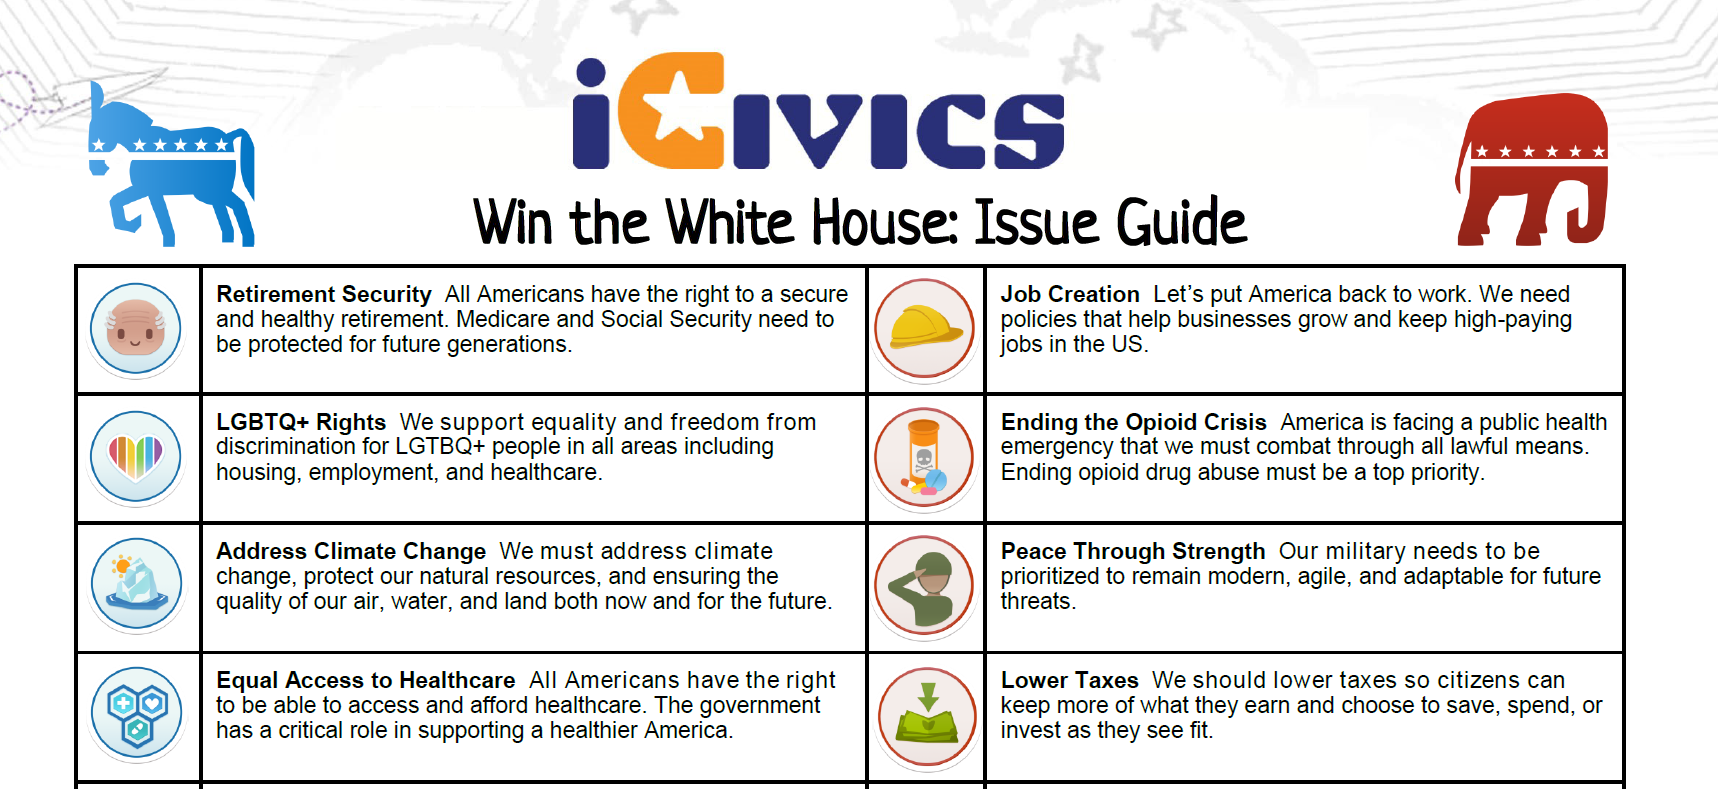 Win the White House 2020 Issue Guide